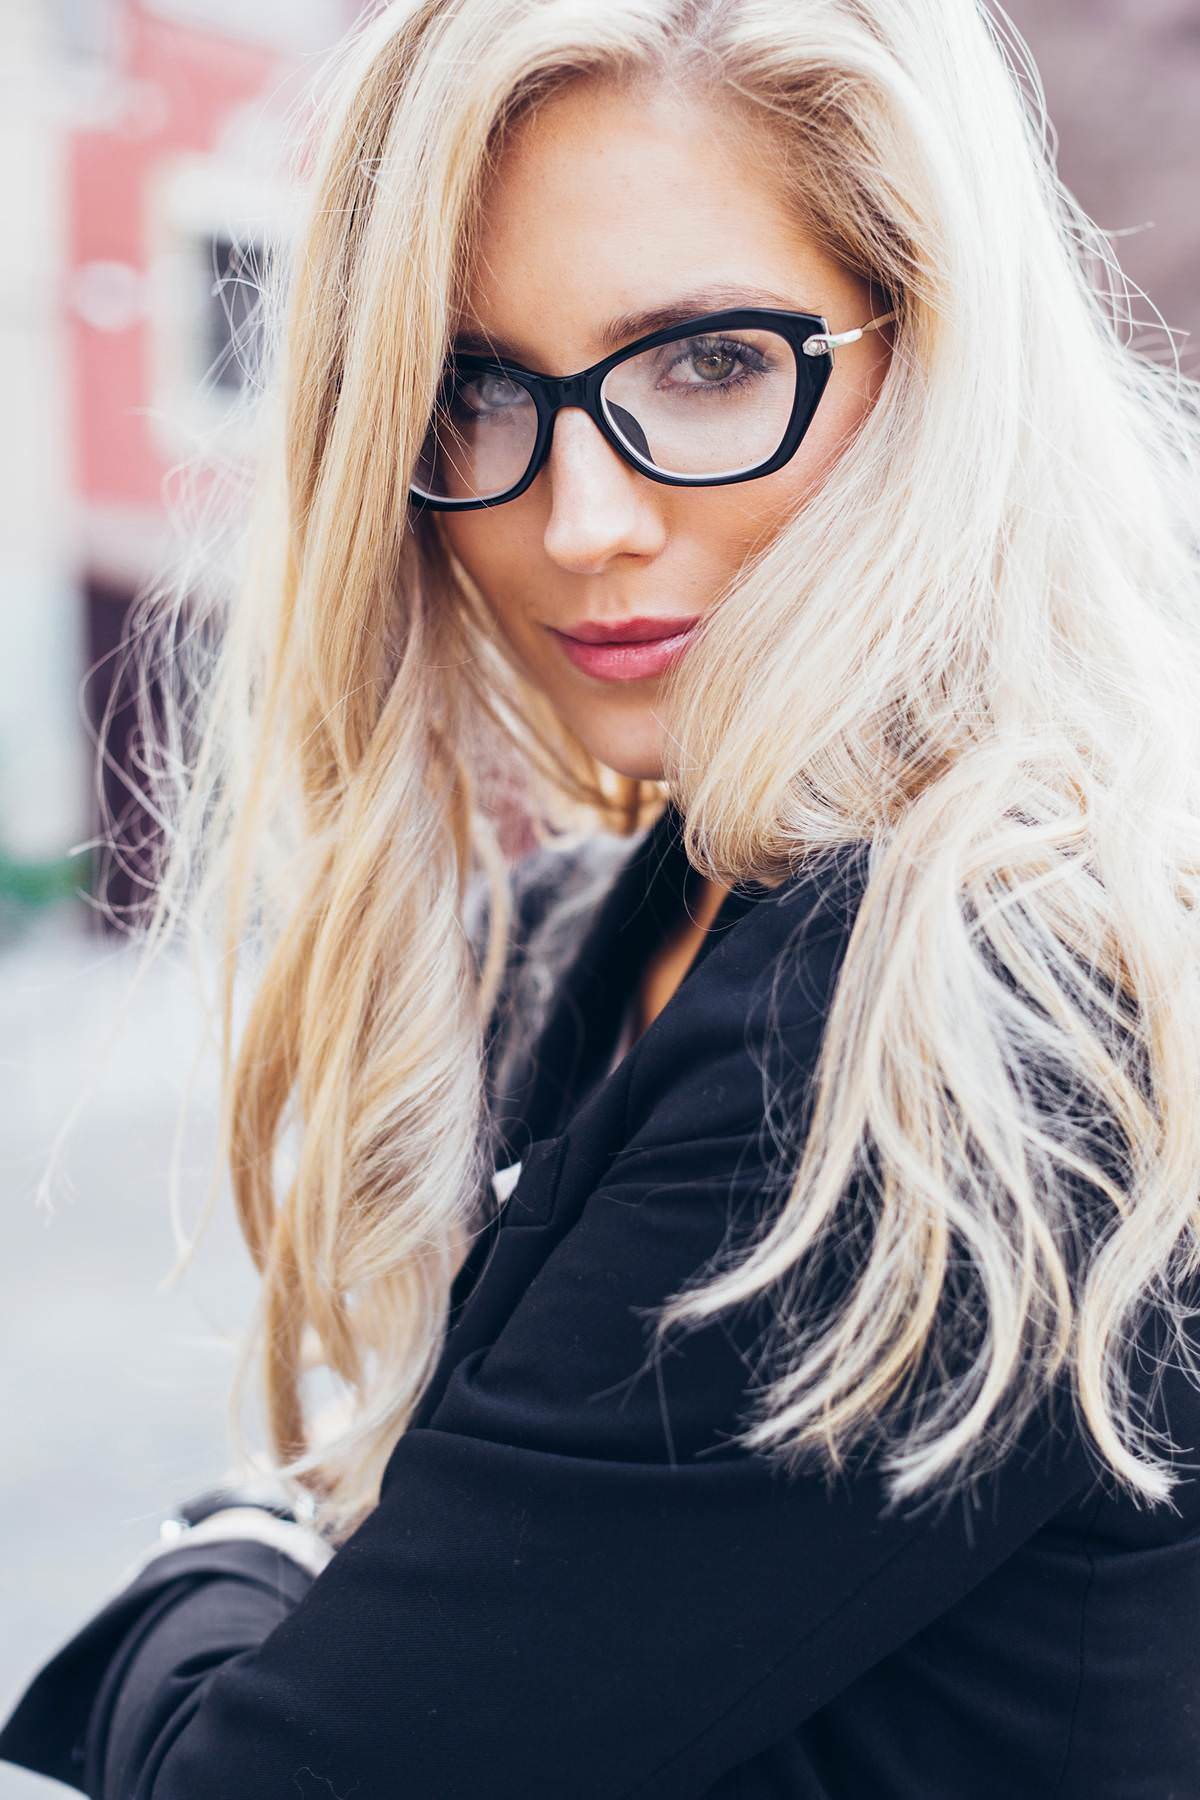 prescription eyeglasses fashion blogger